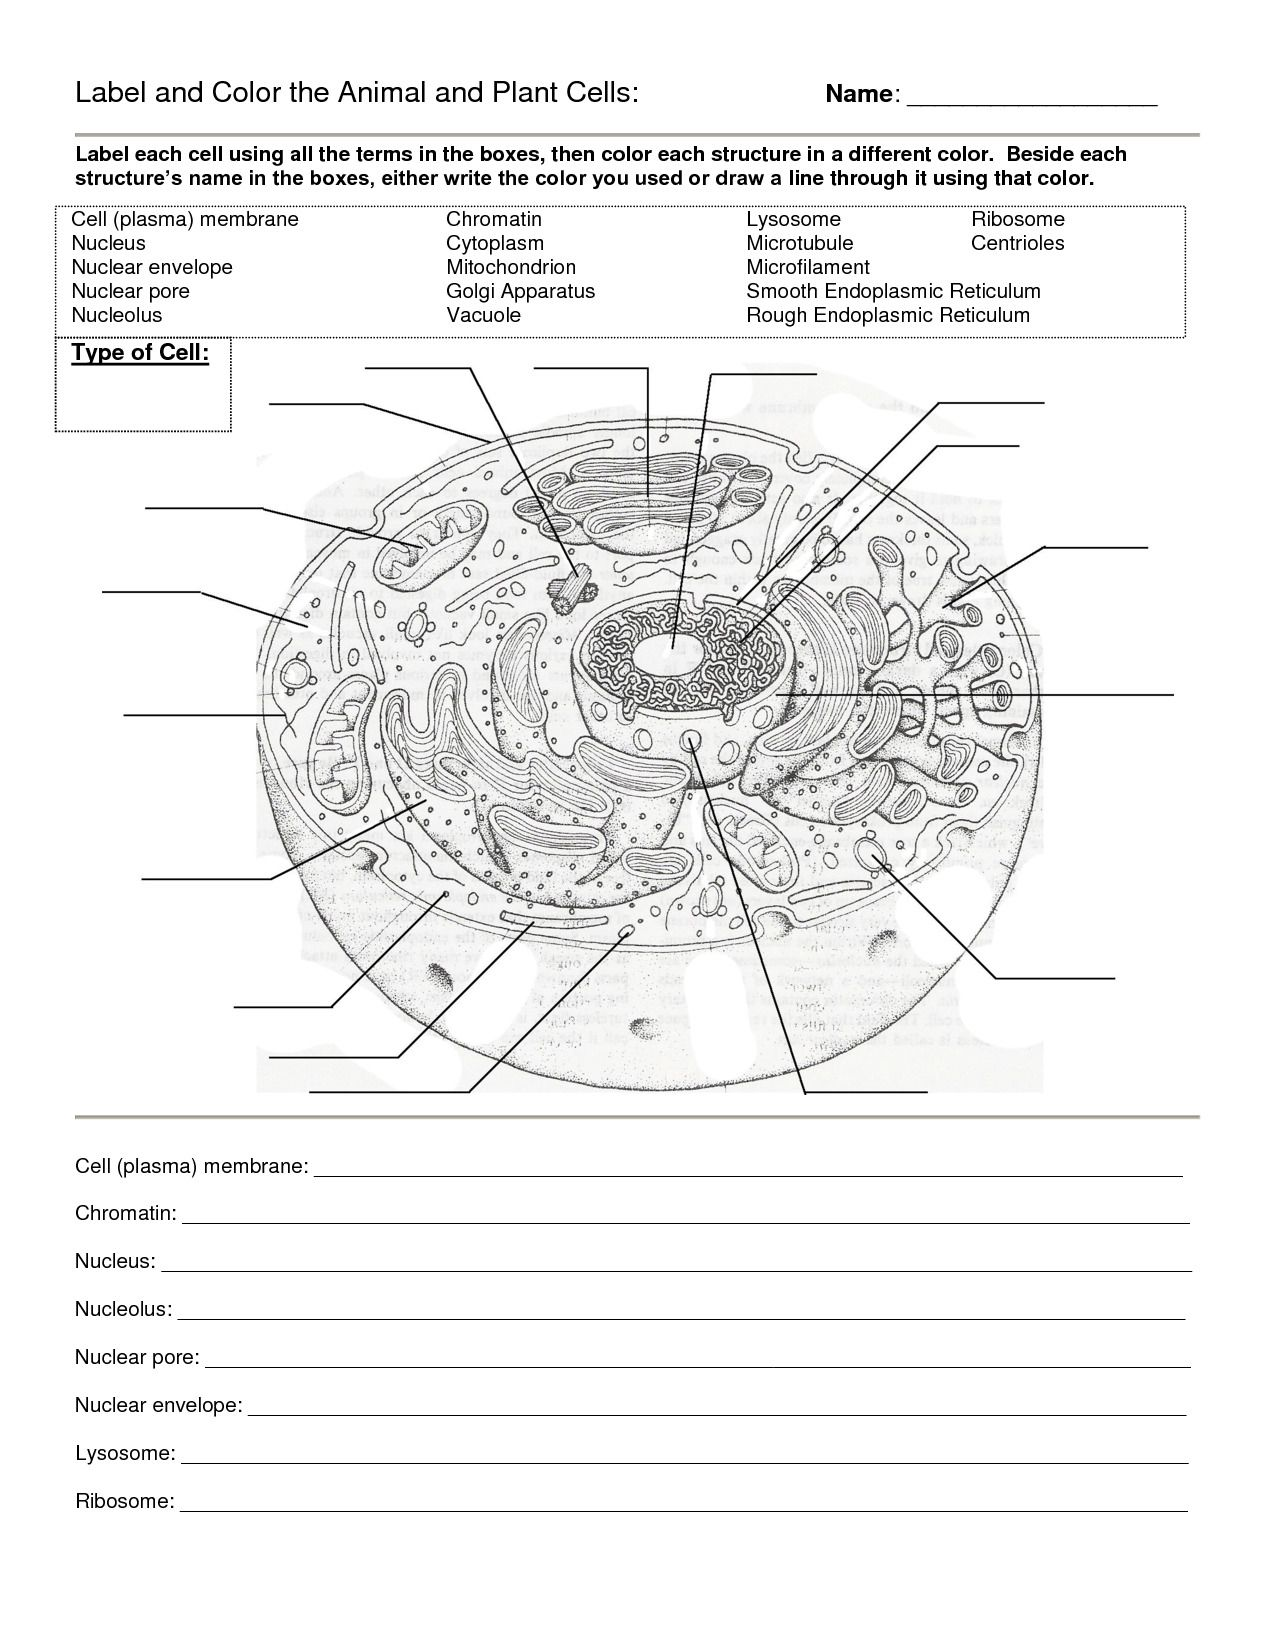 Prokaryotic And Eukaryotic Cells Worksheet